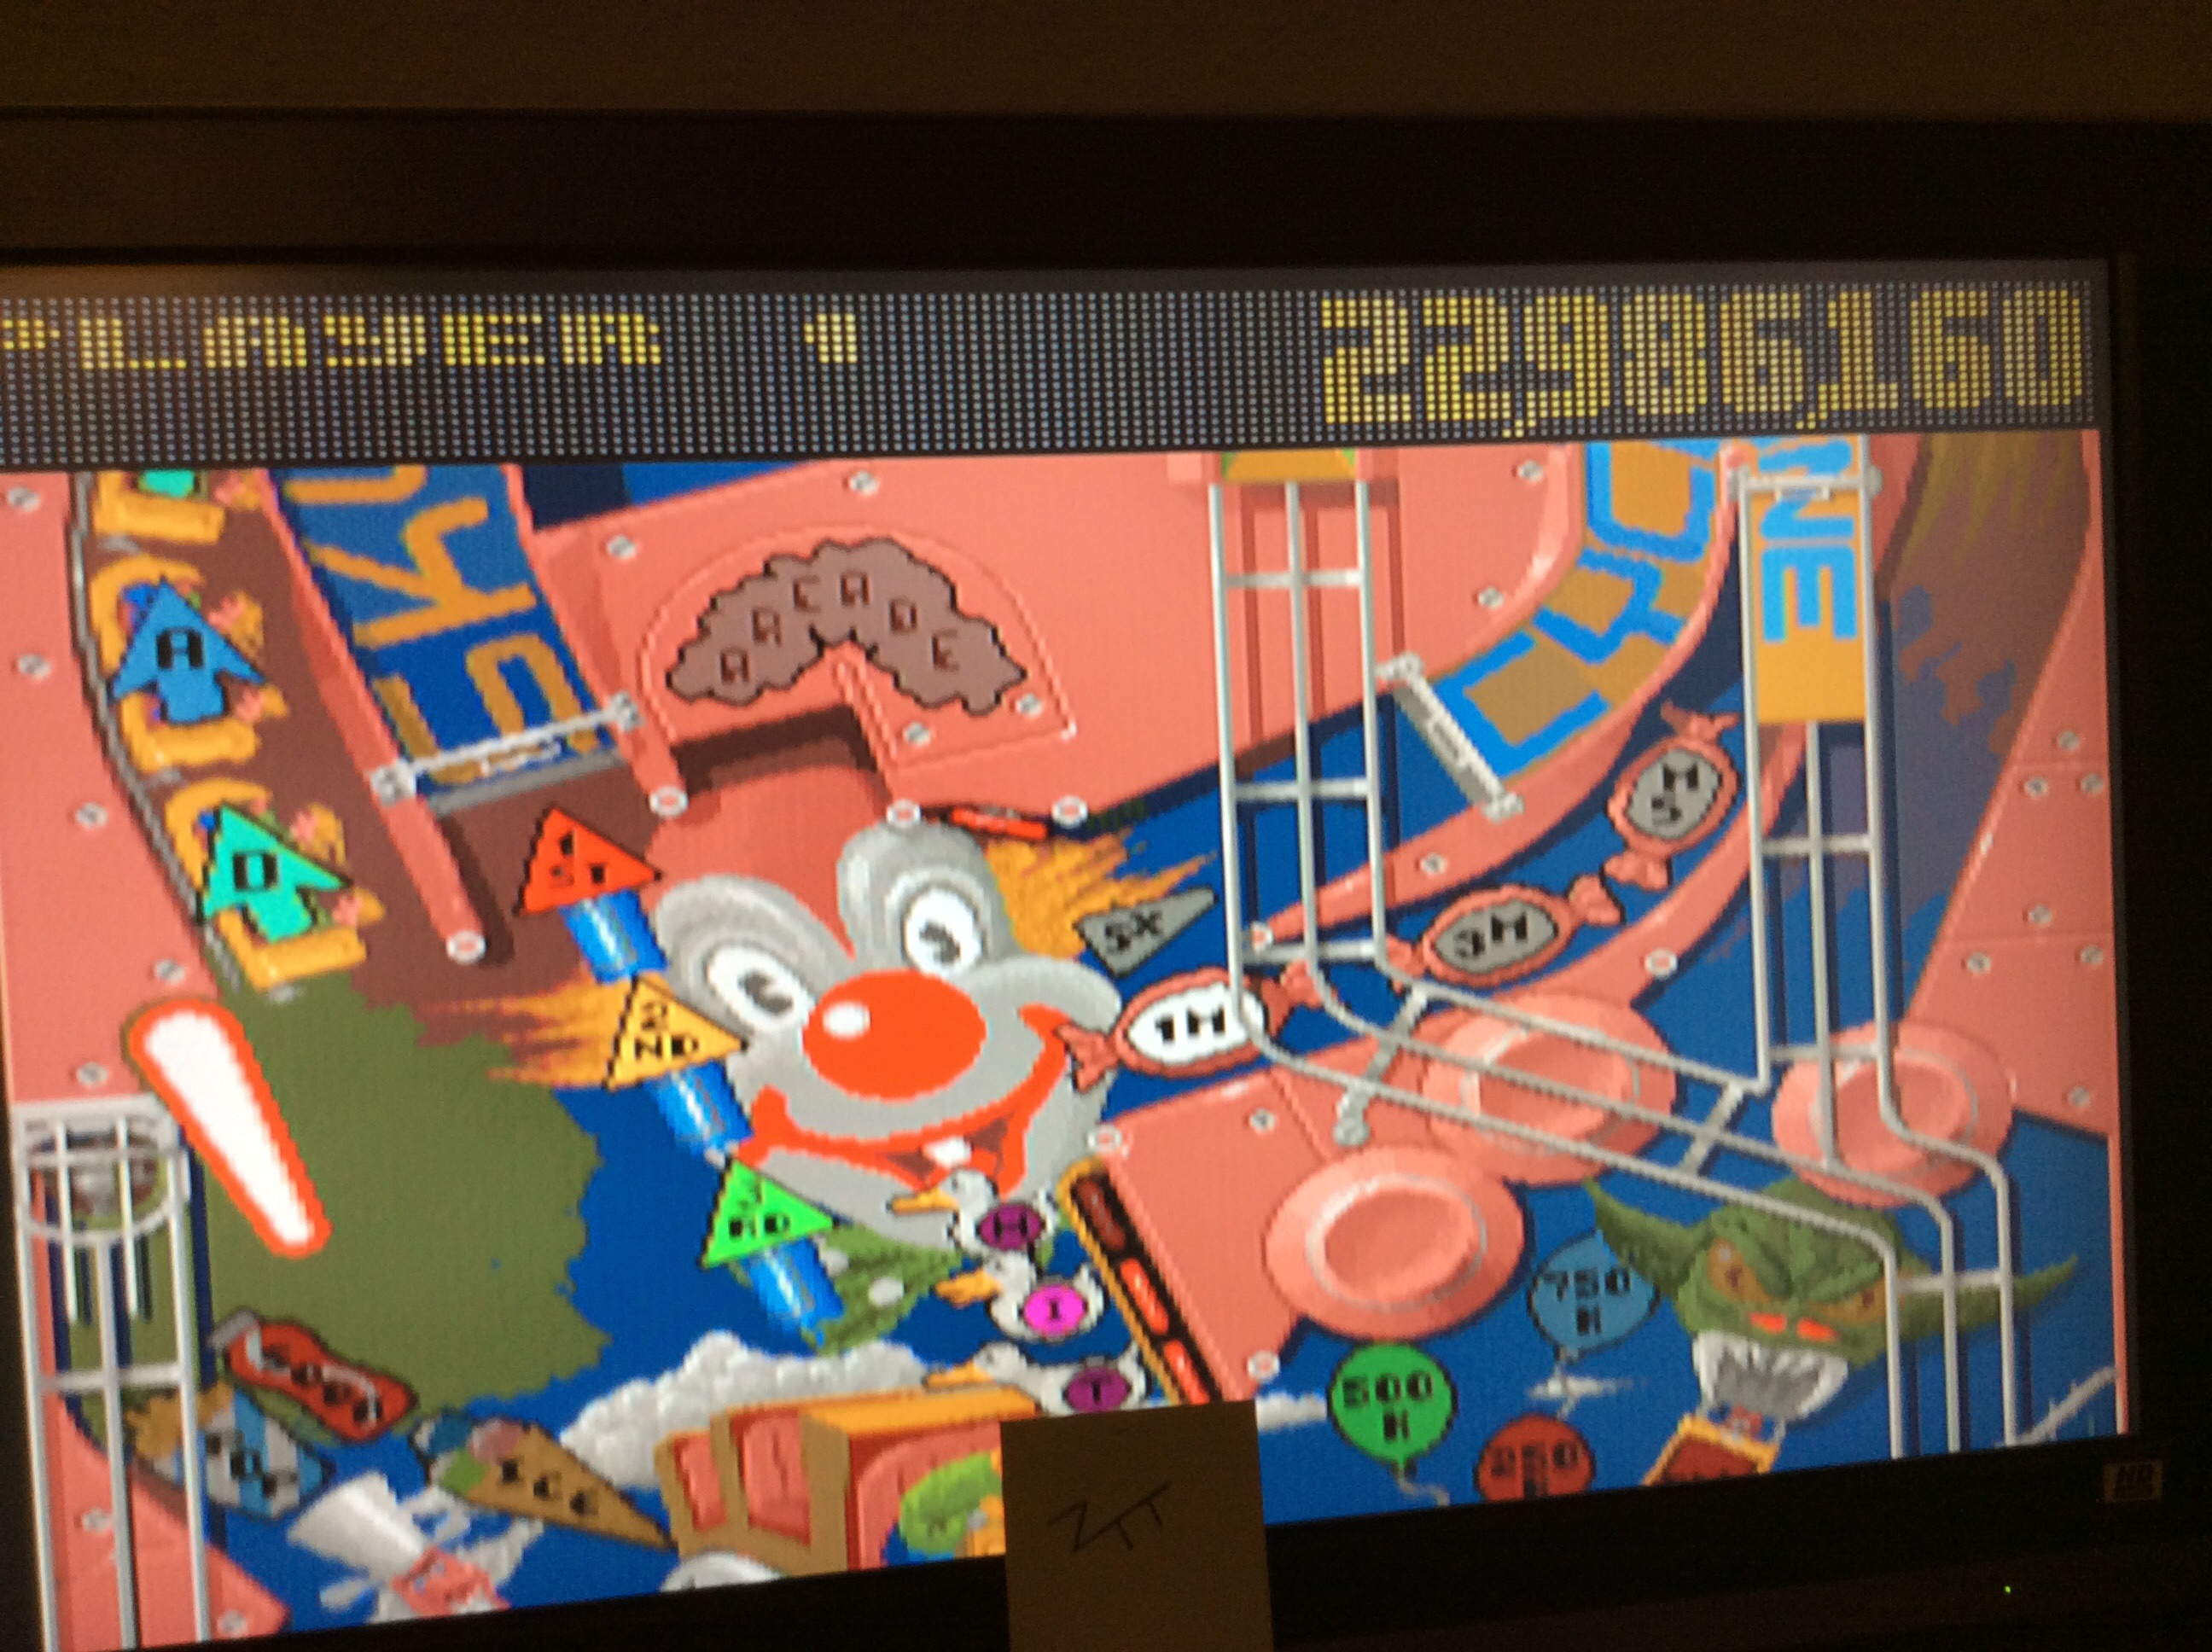 Frankie: Pinball Fantasies: Party Land (Amiga) 22,986,160 points on 2016-09-29 12:22:29